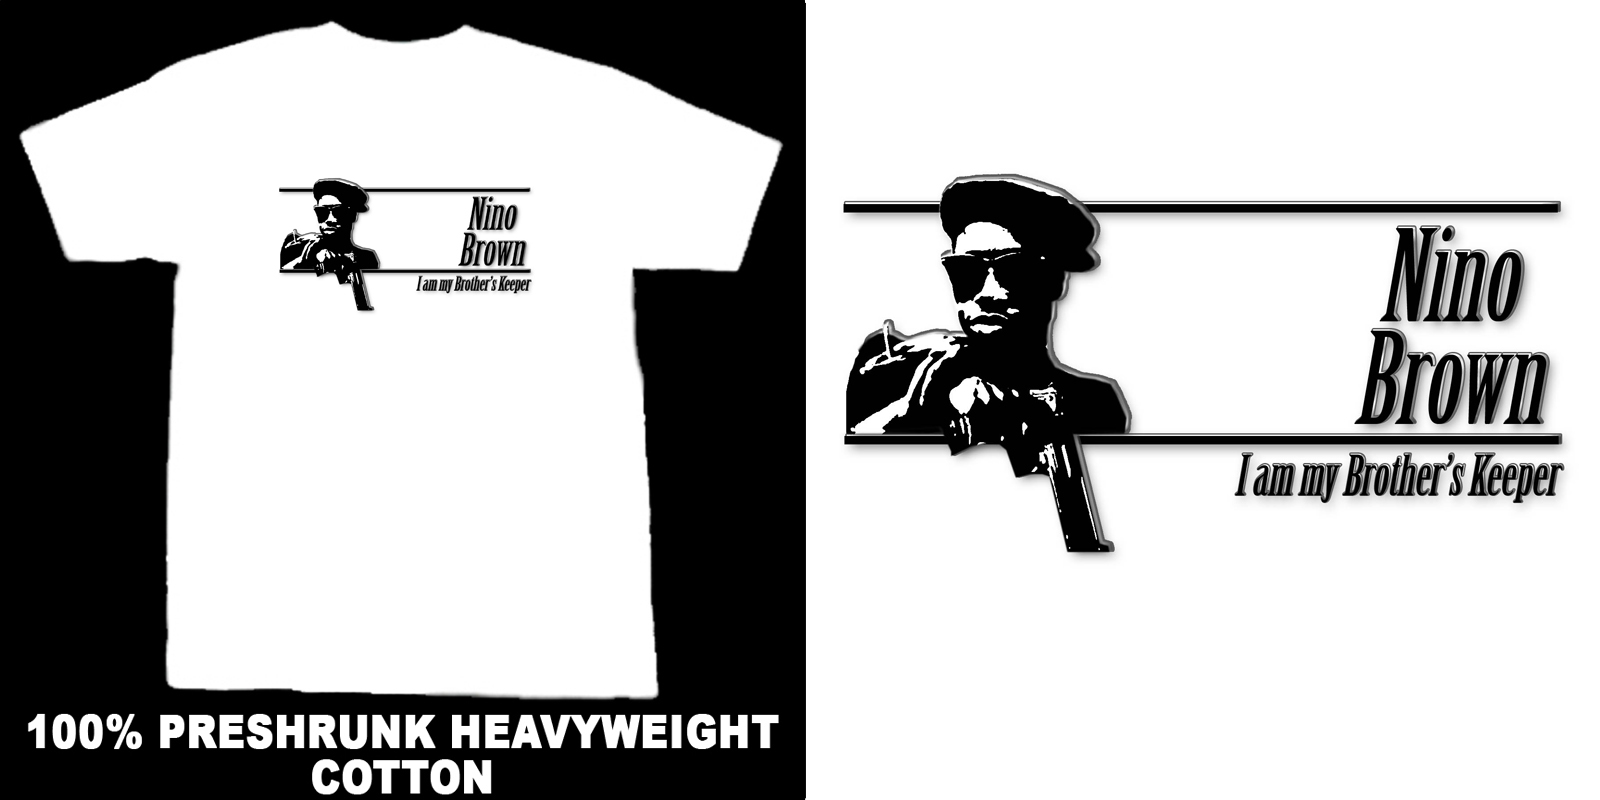 Nino Brown New Jack City Brother's Keeper  T Shirt